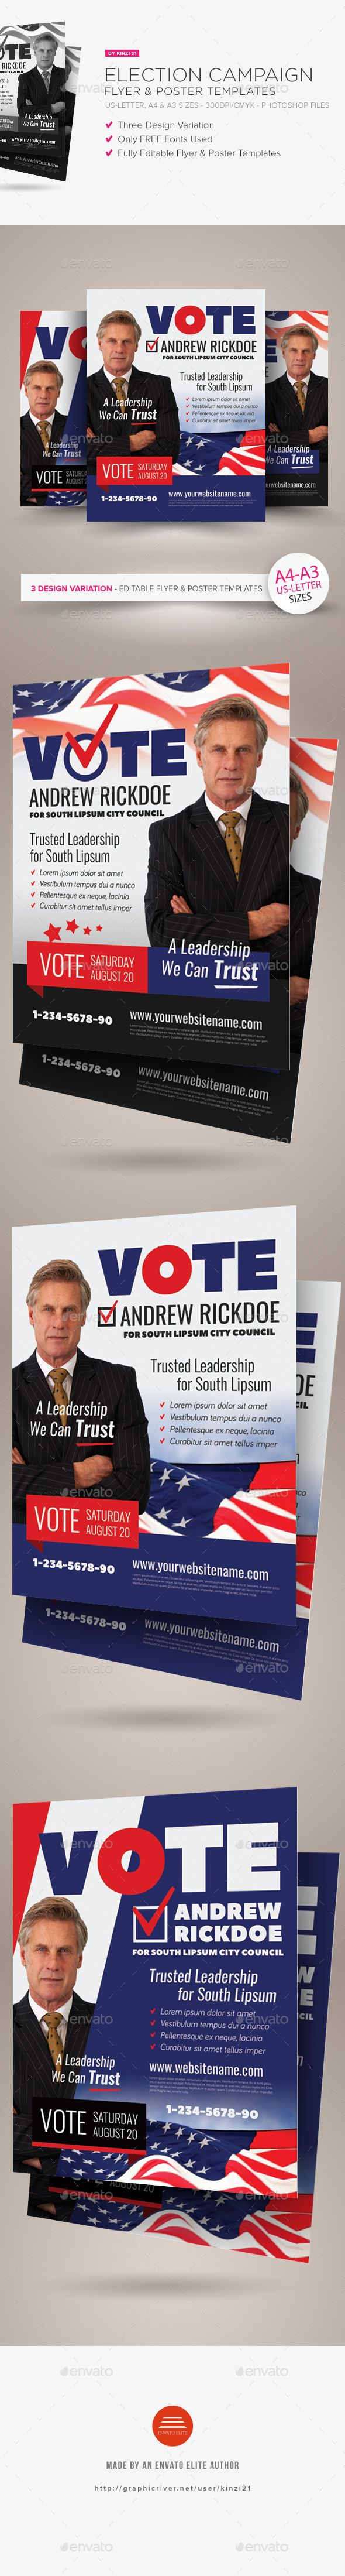 Election Campaign Flyer or Poster Templates